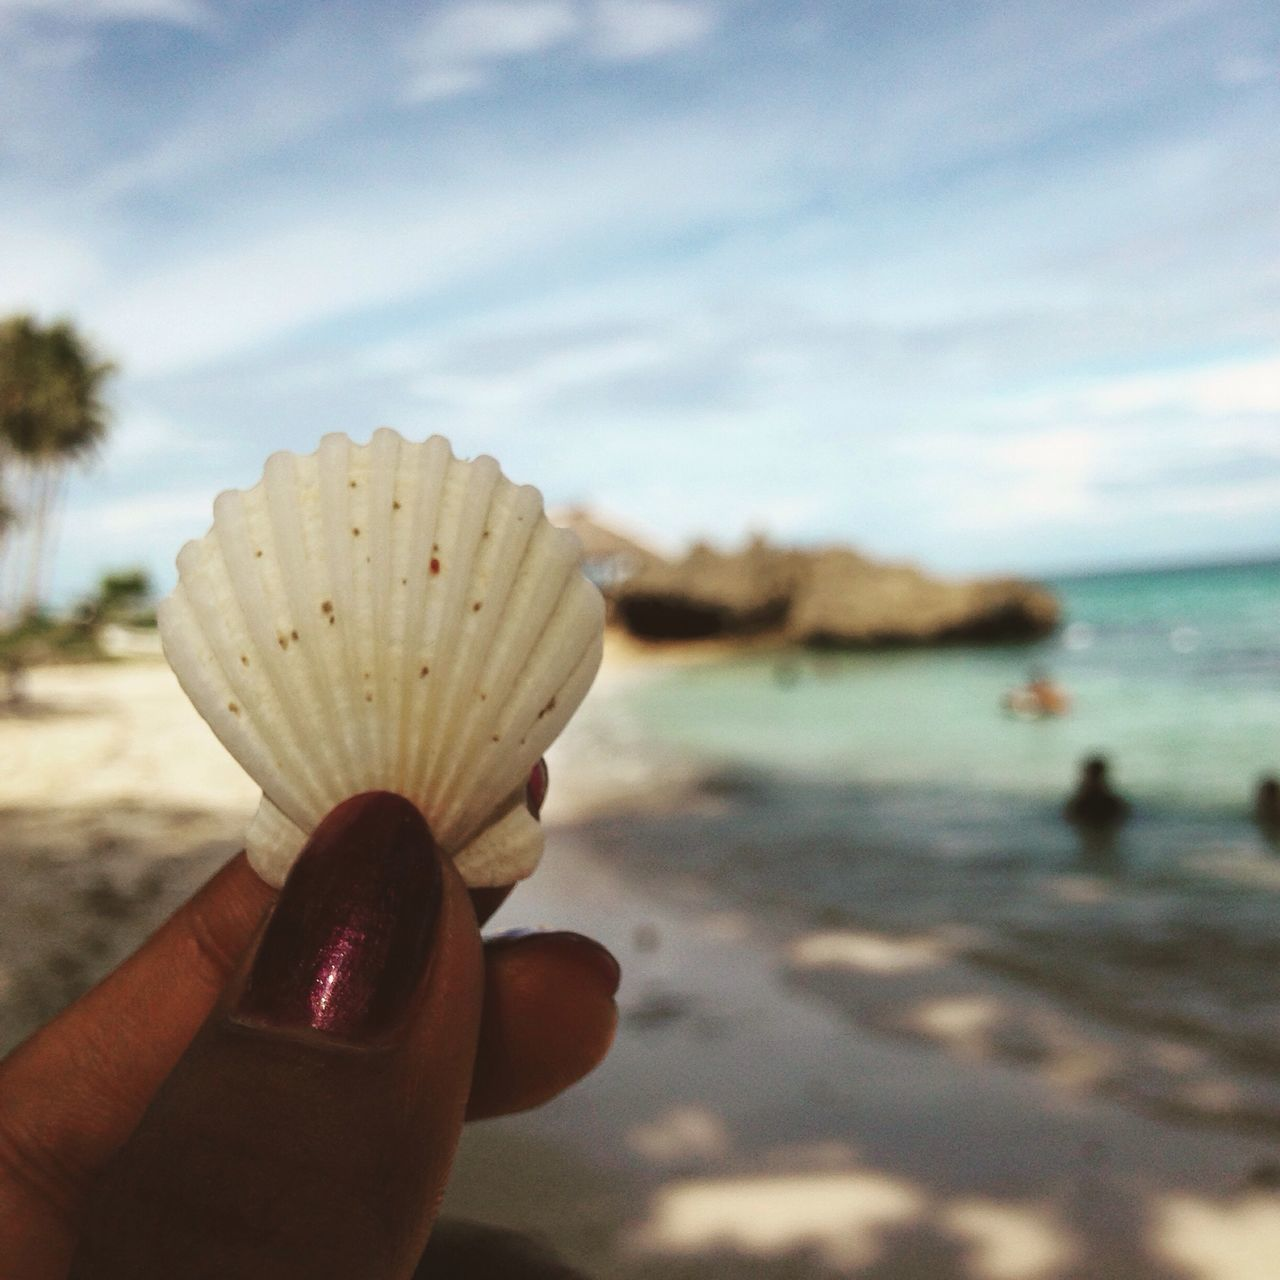 Seashell Seashell, By The Sea Shore Scallop Shells Sea And Sky Hello World Taking Photos Enjoying Life My Hand  My Happy Place  Beach Life Eyeem Bohol Seashore Beaching Stressreliever Fresh Air And Sunshine Fresh And Clean Away From The Hustle Quiet Moments My Freedom EyeEm Nature Lover Eyeem Philippines Mobile Photography Photography ♥